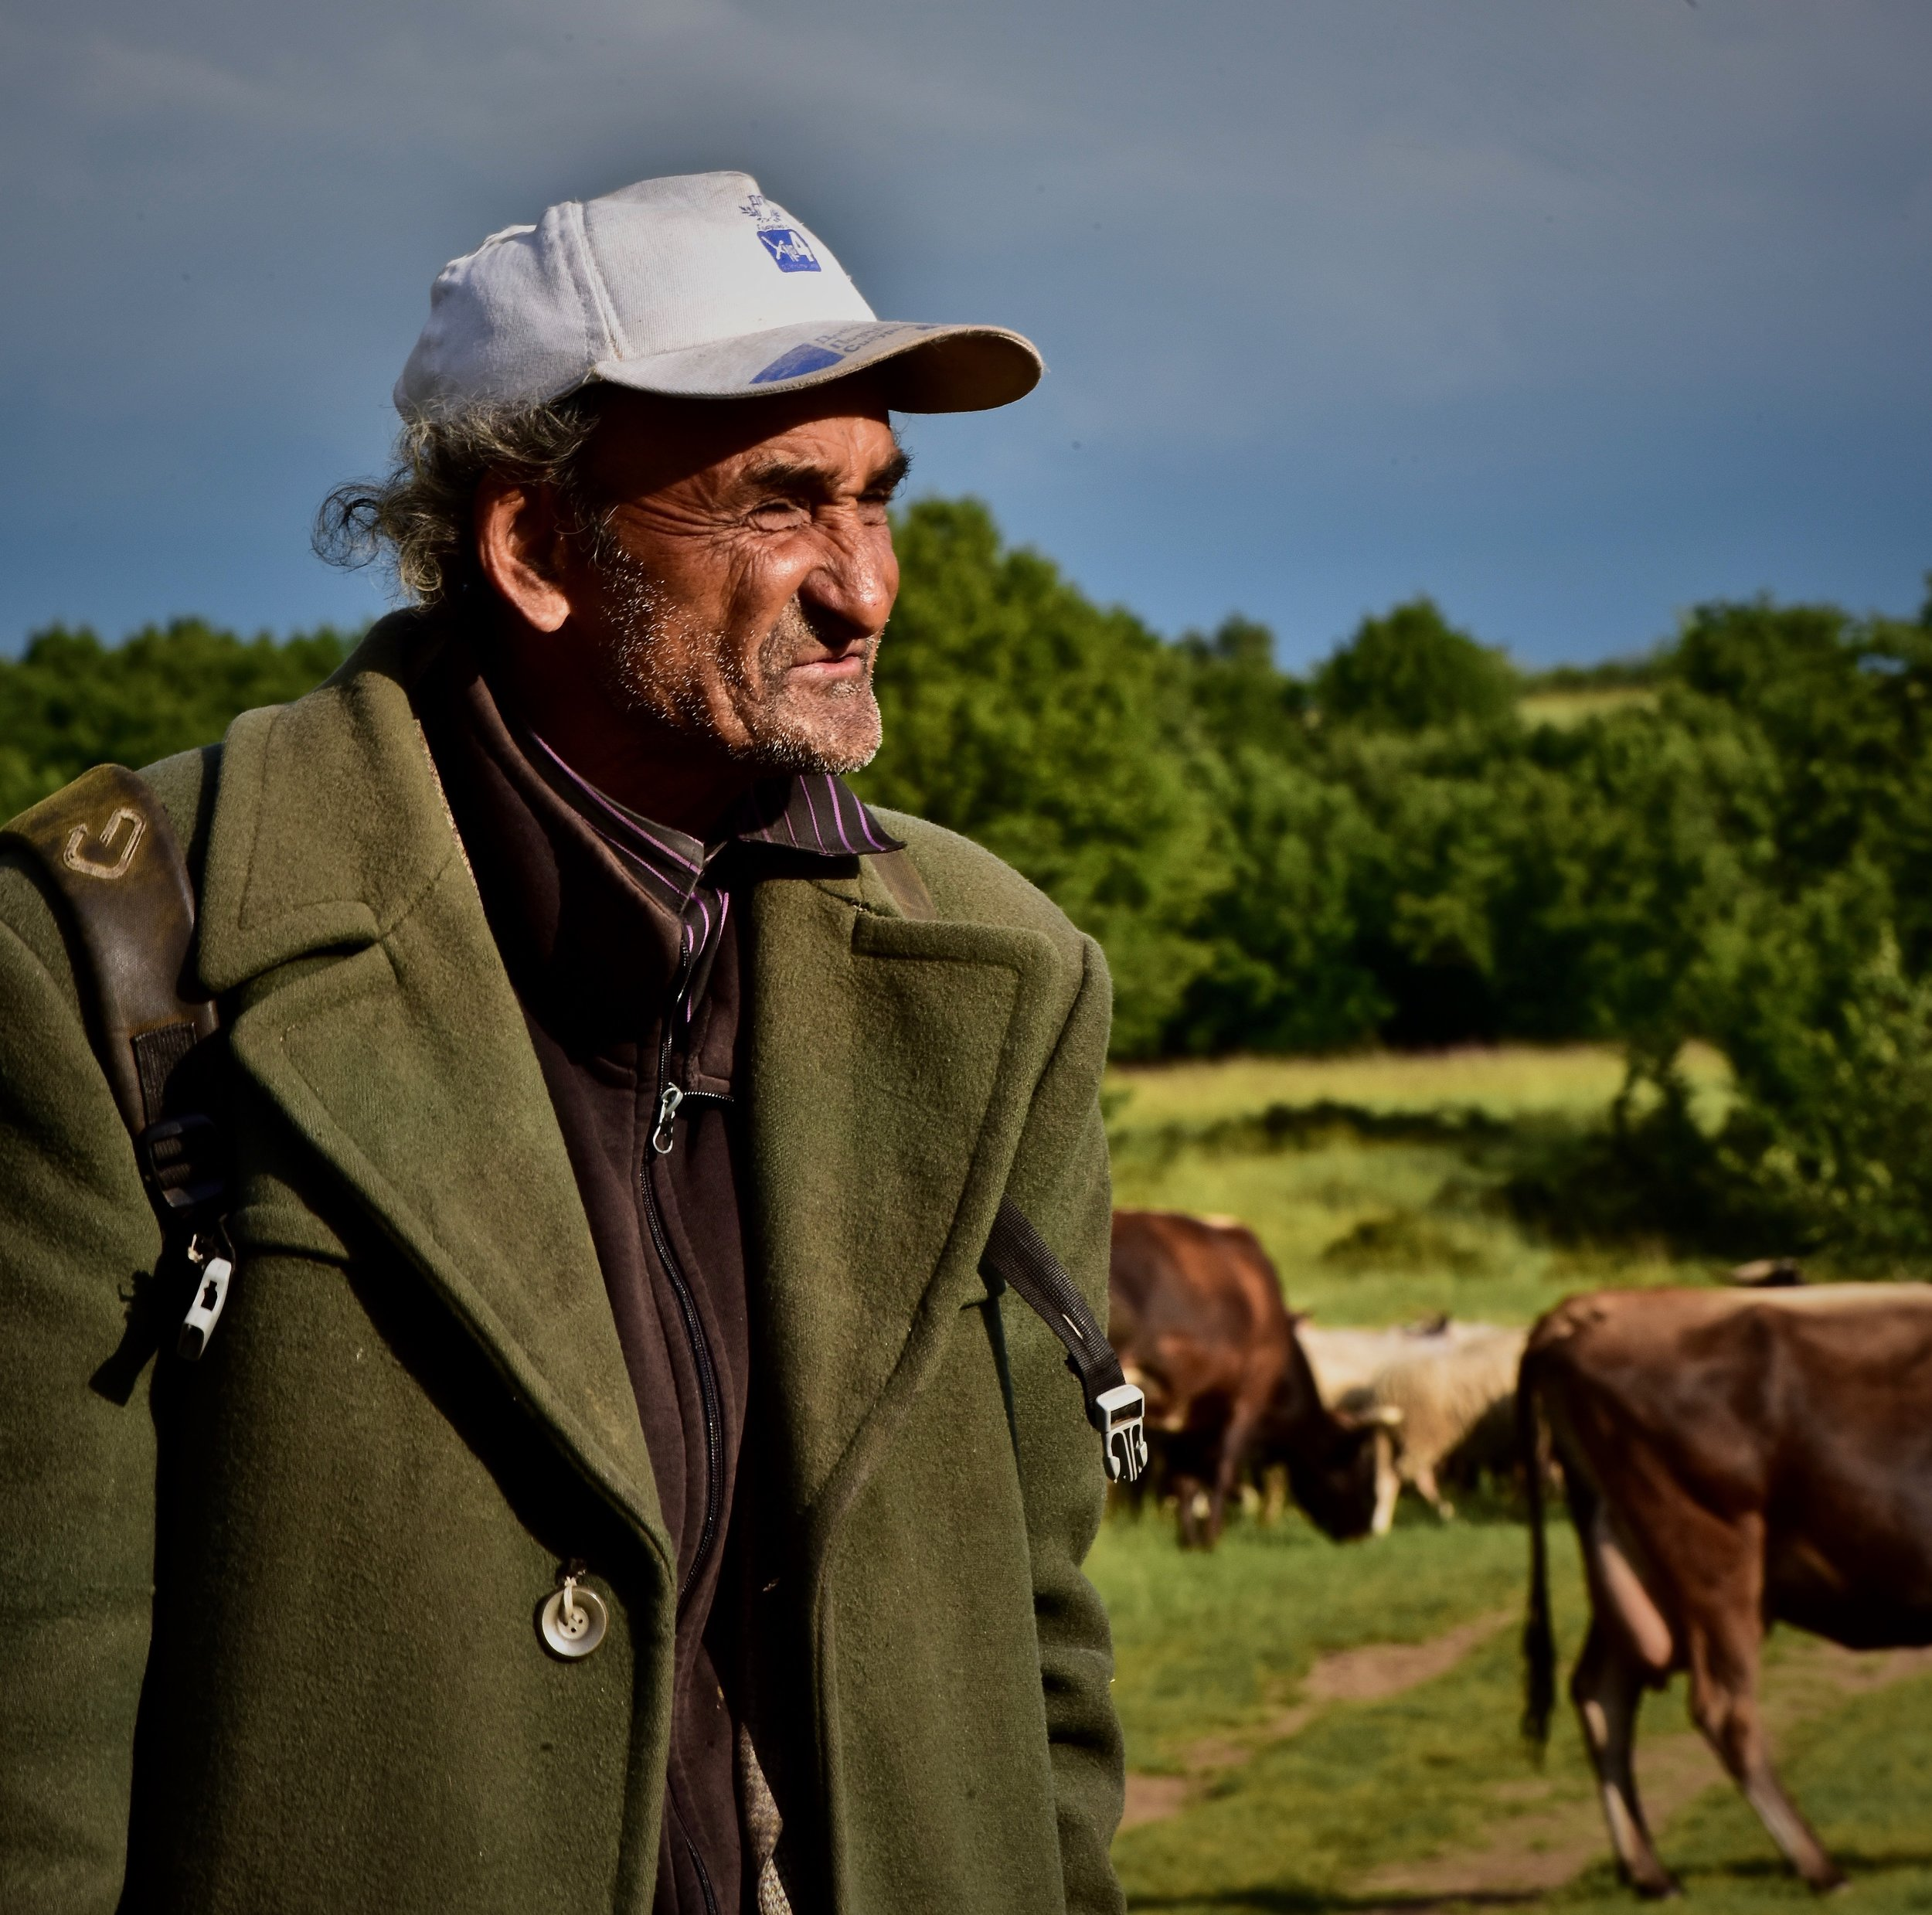 herder-shepherd-wrinkles-working-cows-northloop-phototour-bulgaria-alison-2017-MKH7515.jpg